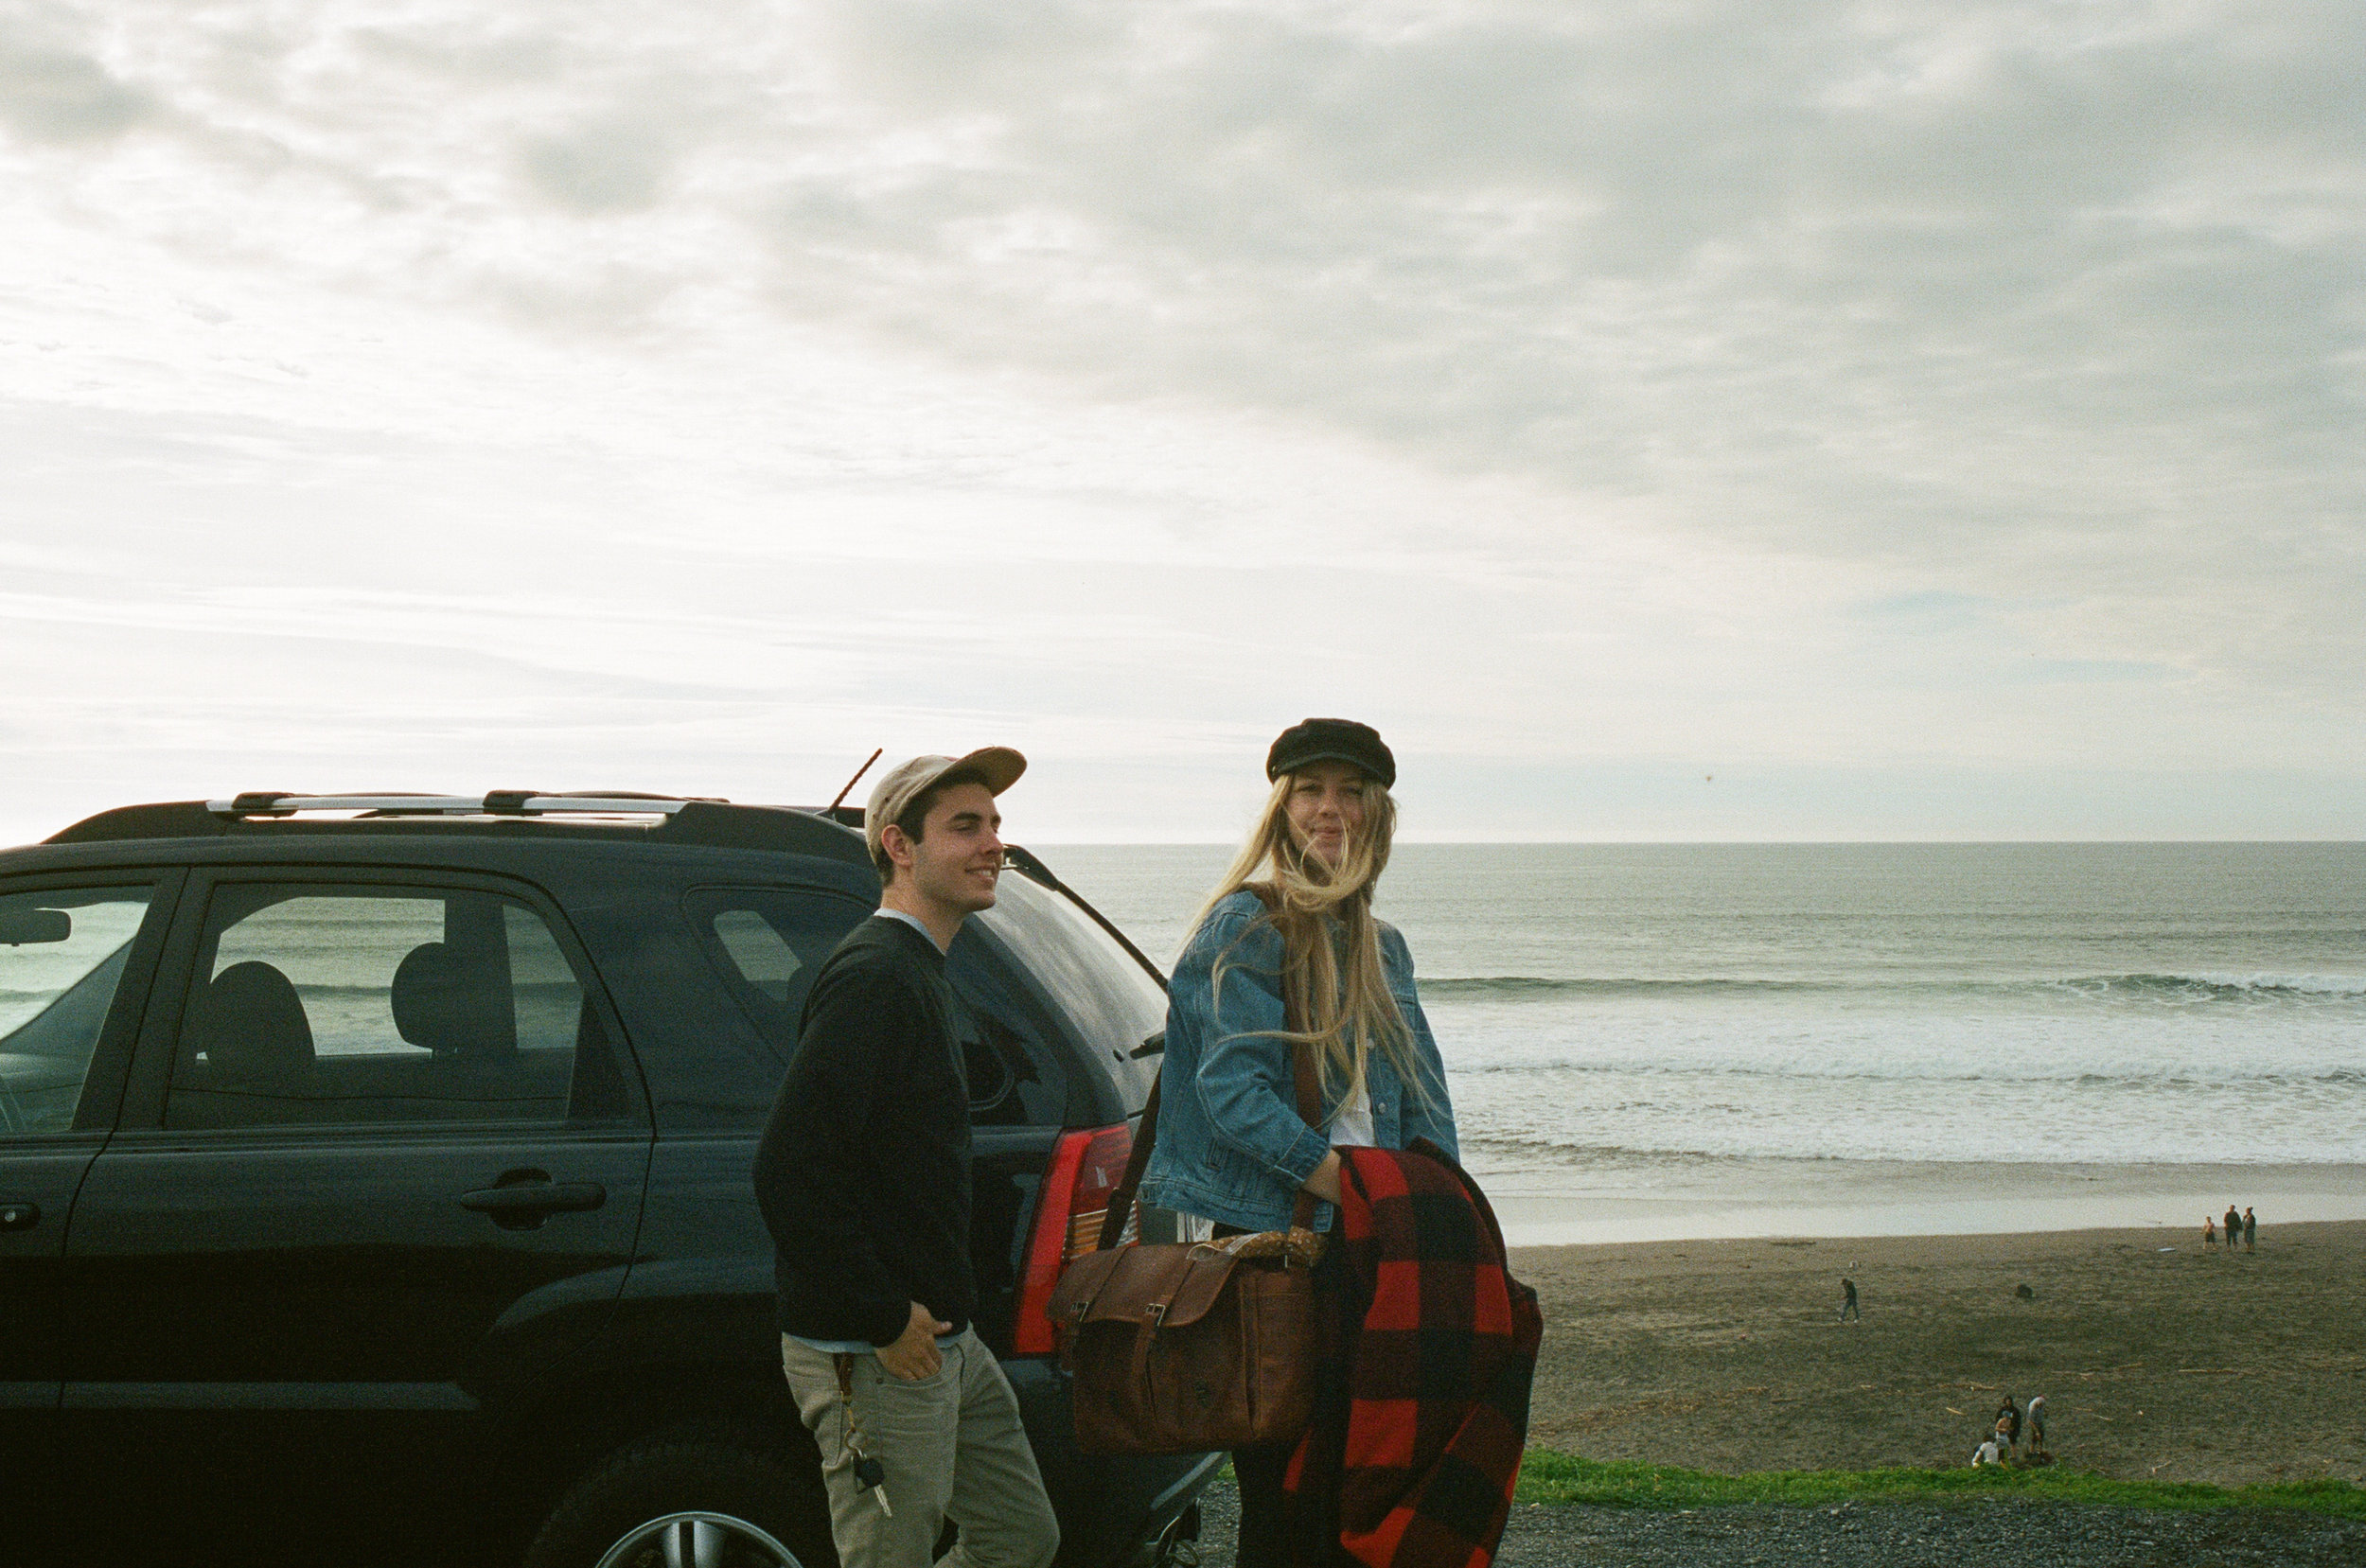 hannah&cole-california-film-jan2019-peytoncurry-000098780015.jpg